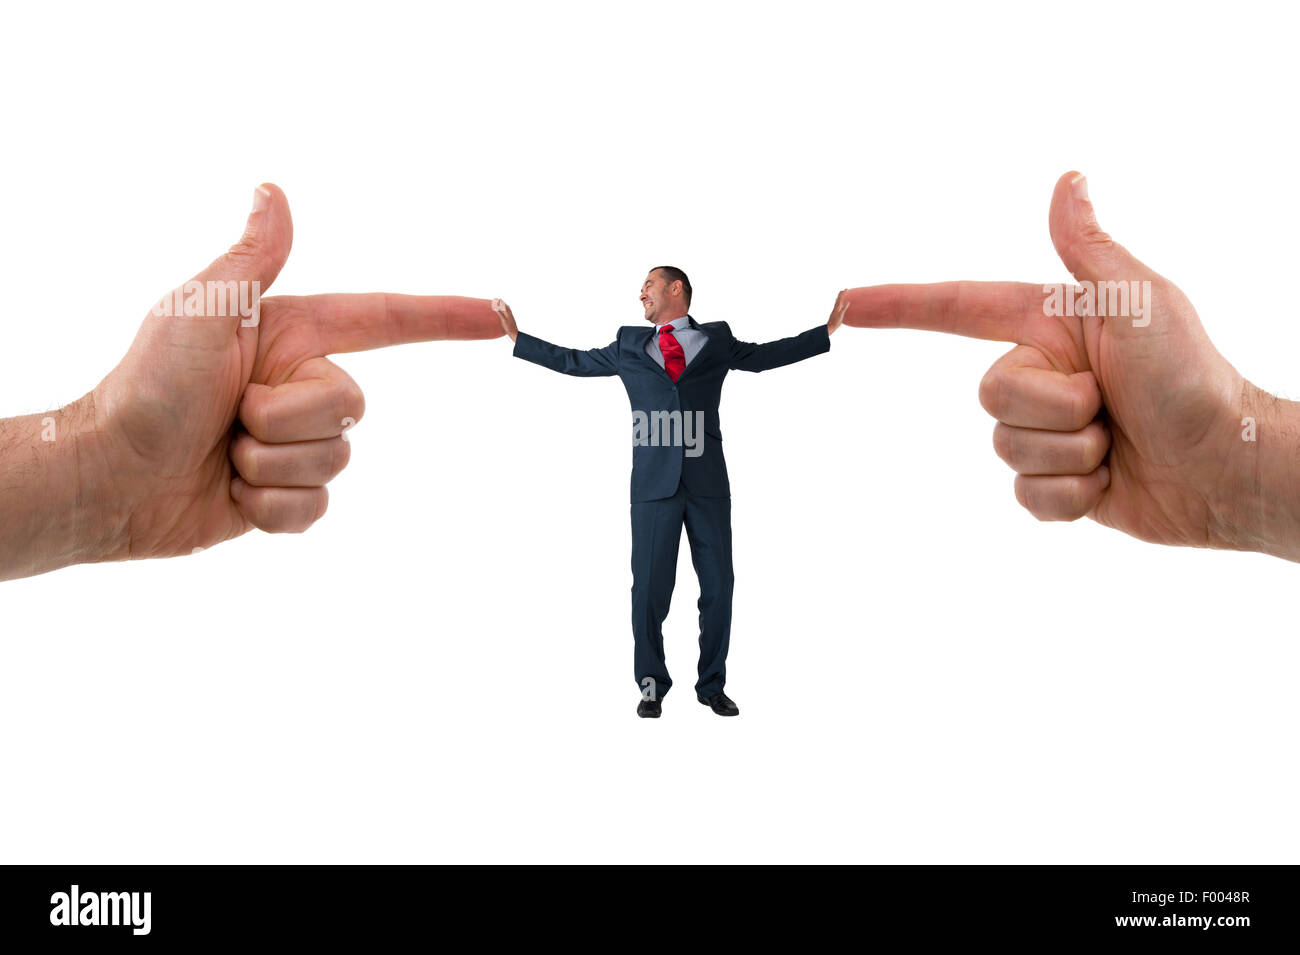 businessman accusation concept pointing fingers business stress pressure - Stock Image